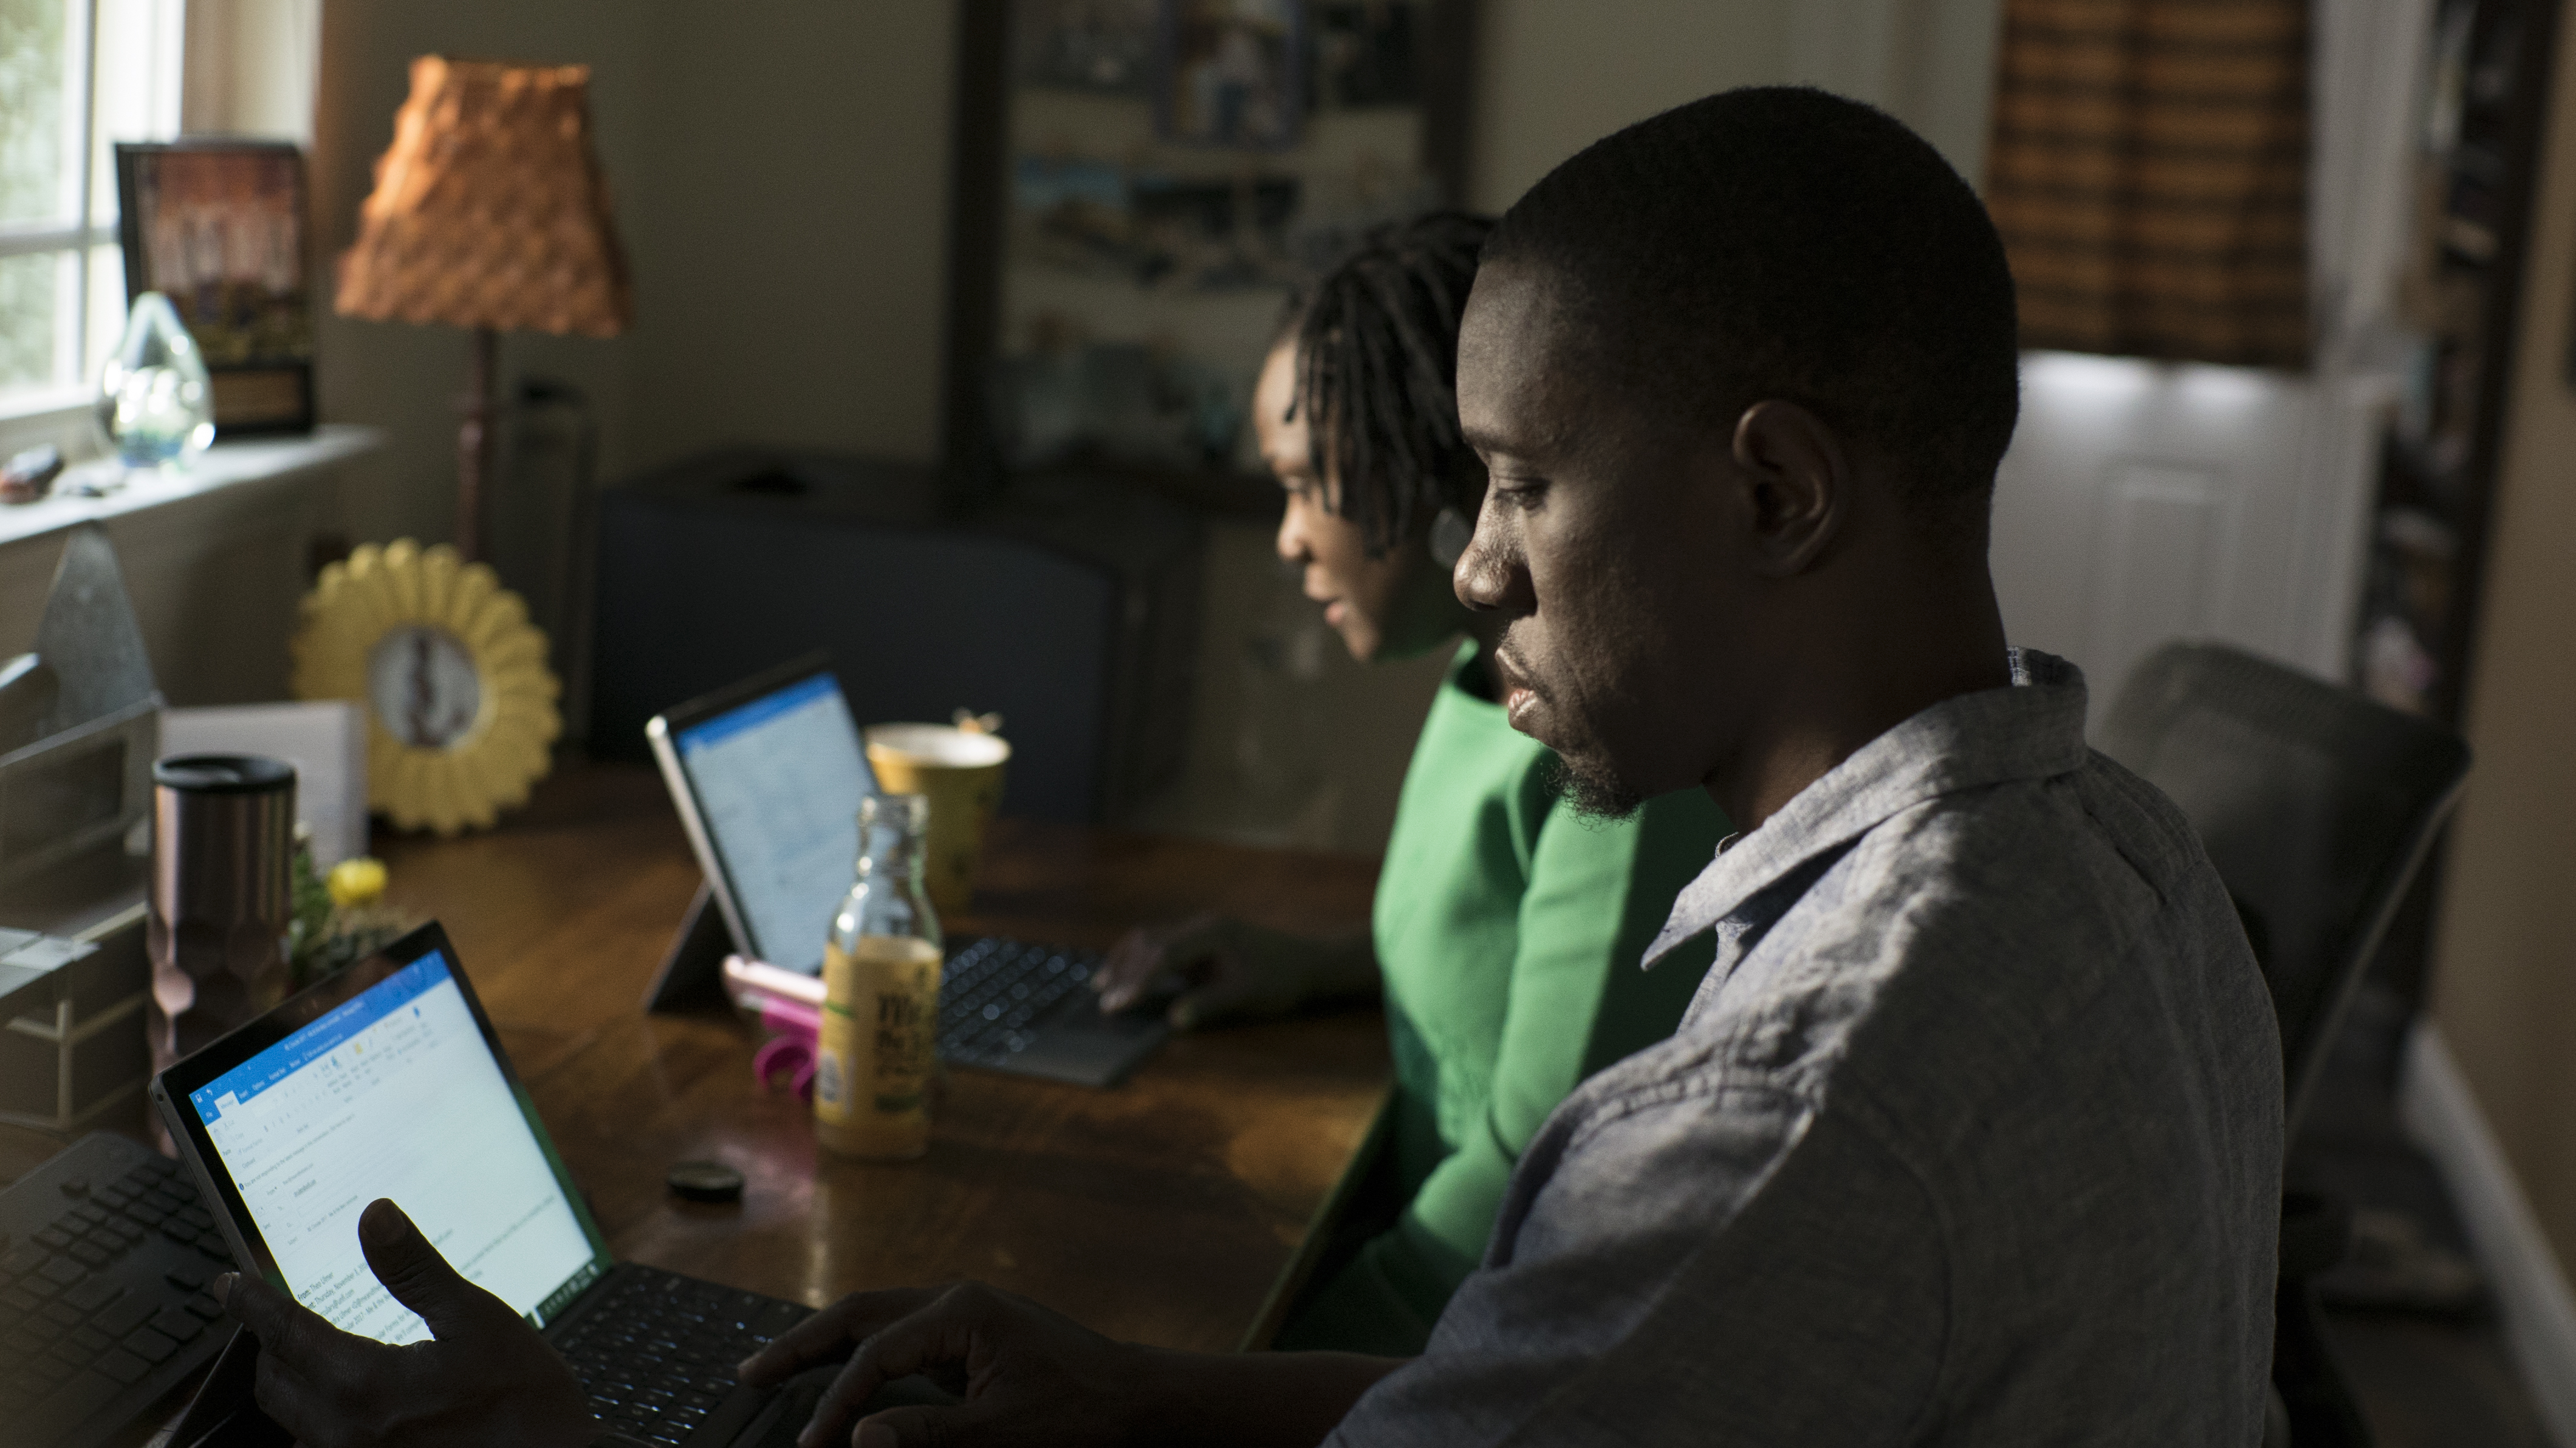 Photo of man and woman working side by side on laptops.